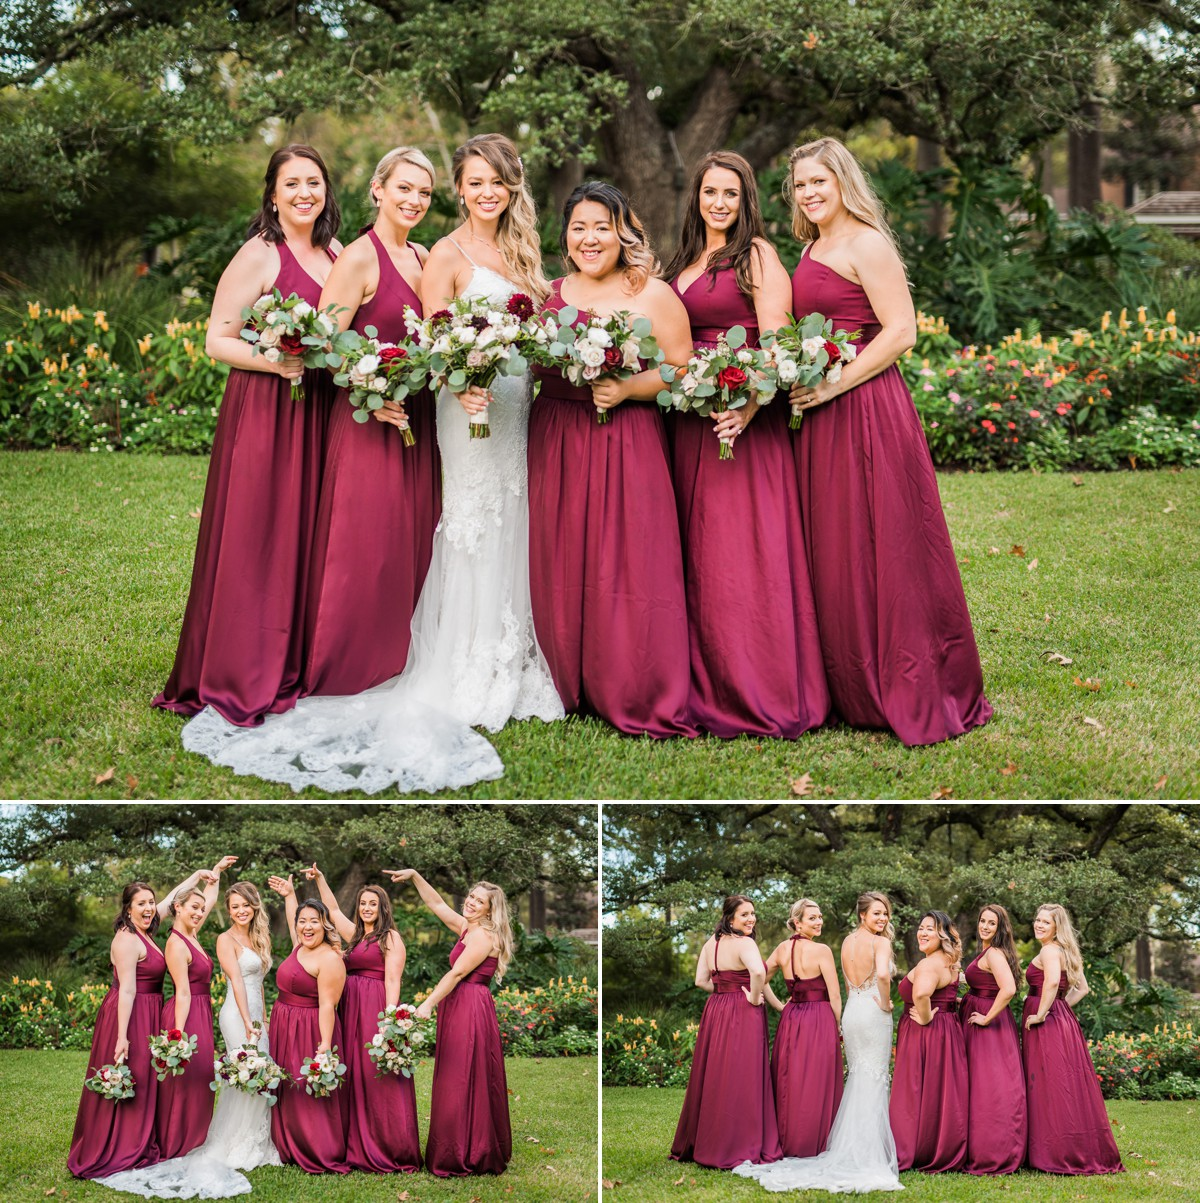 Manor House Wedding at The Houstonian Hotel Bridesmaids outdoor portraits